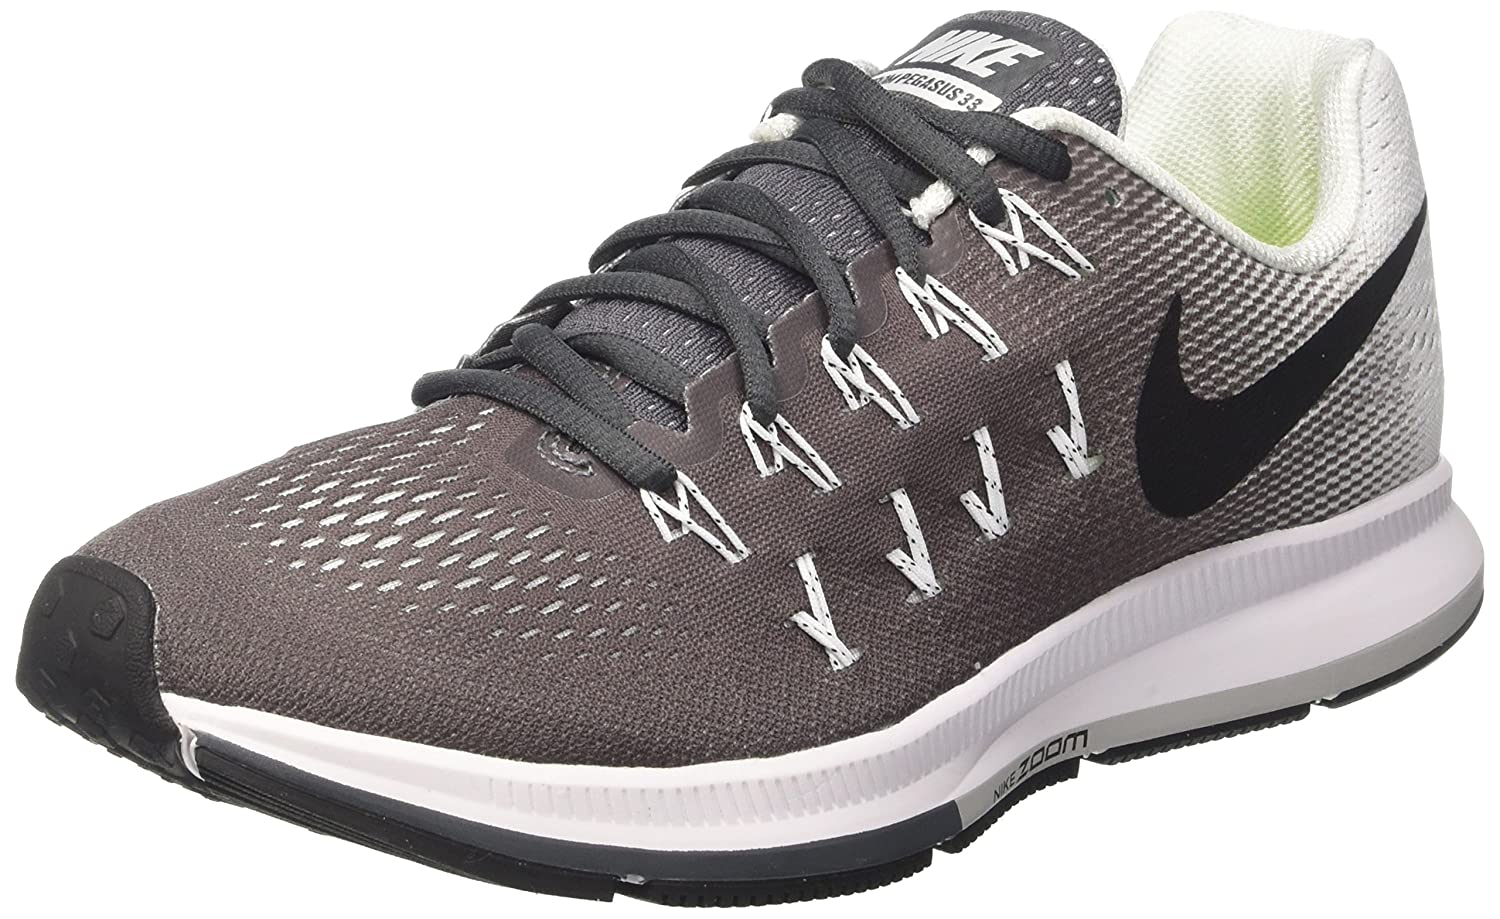 NIKE Women's Air Zoom Pegasus 33 B019DSG80K 11.5 B(M) US|Dark Grey / Black - White